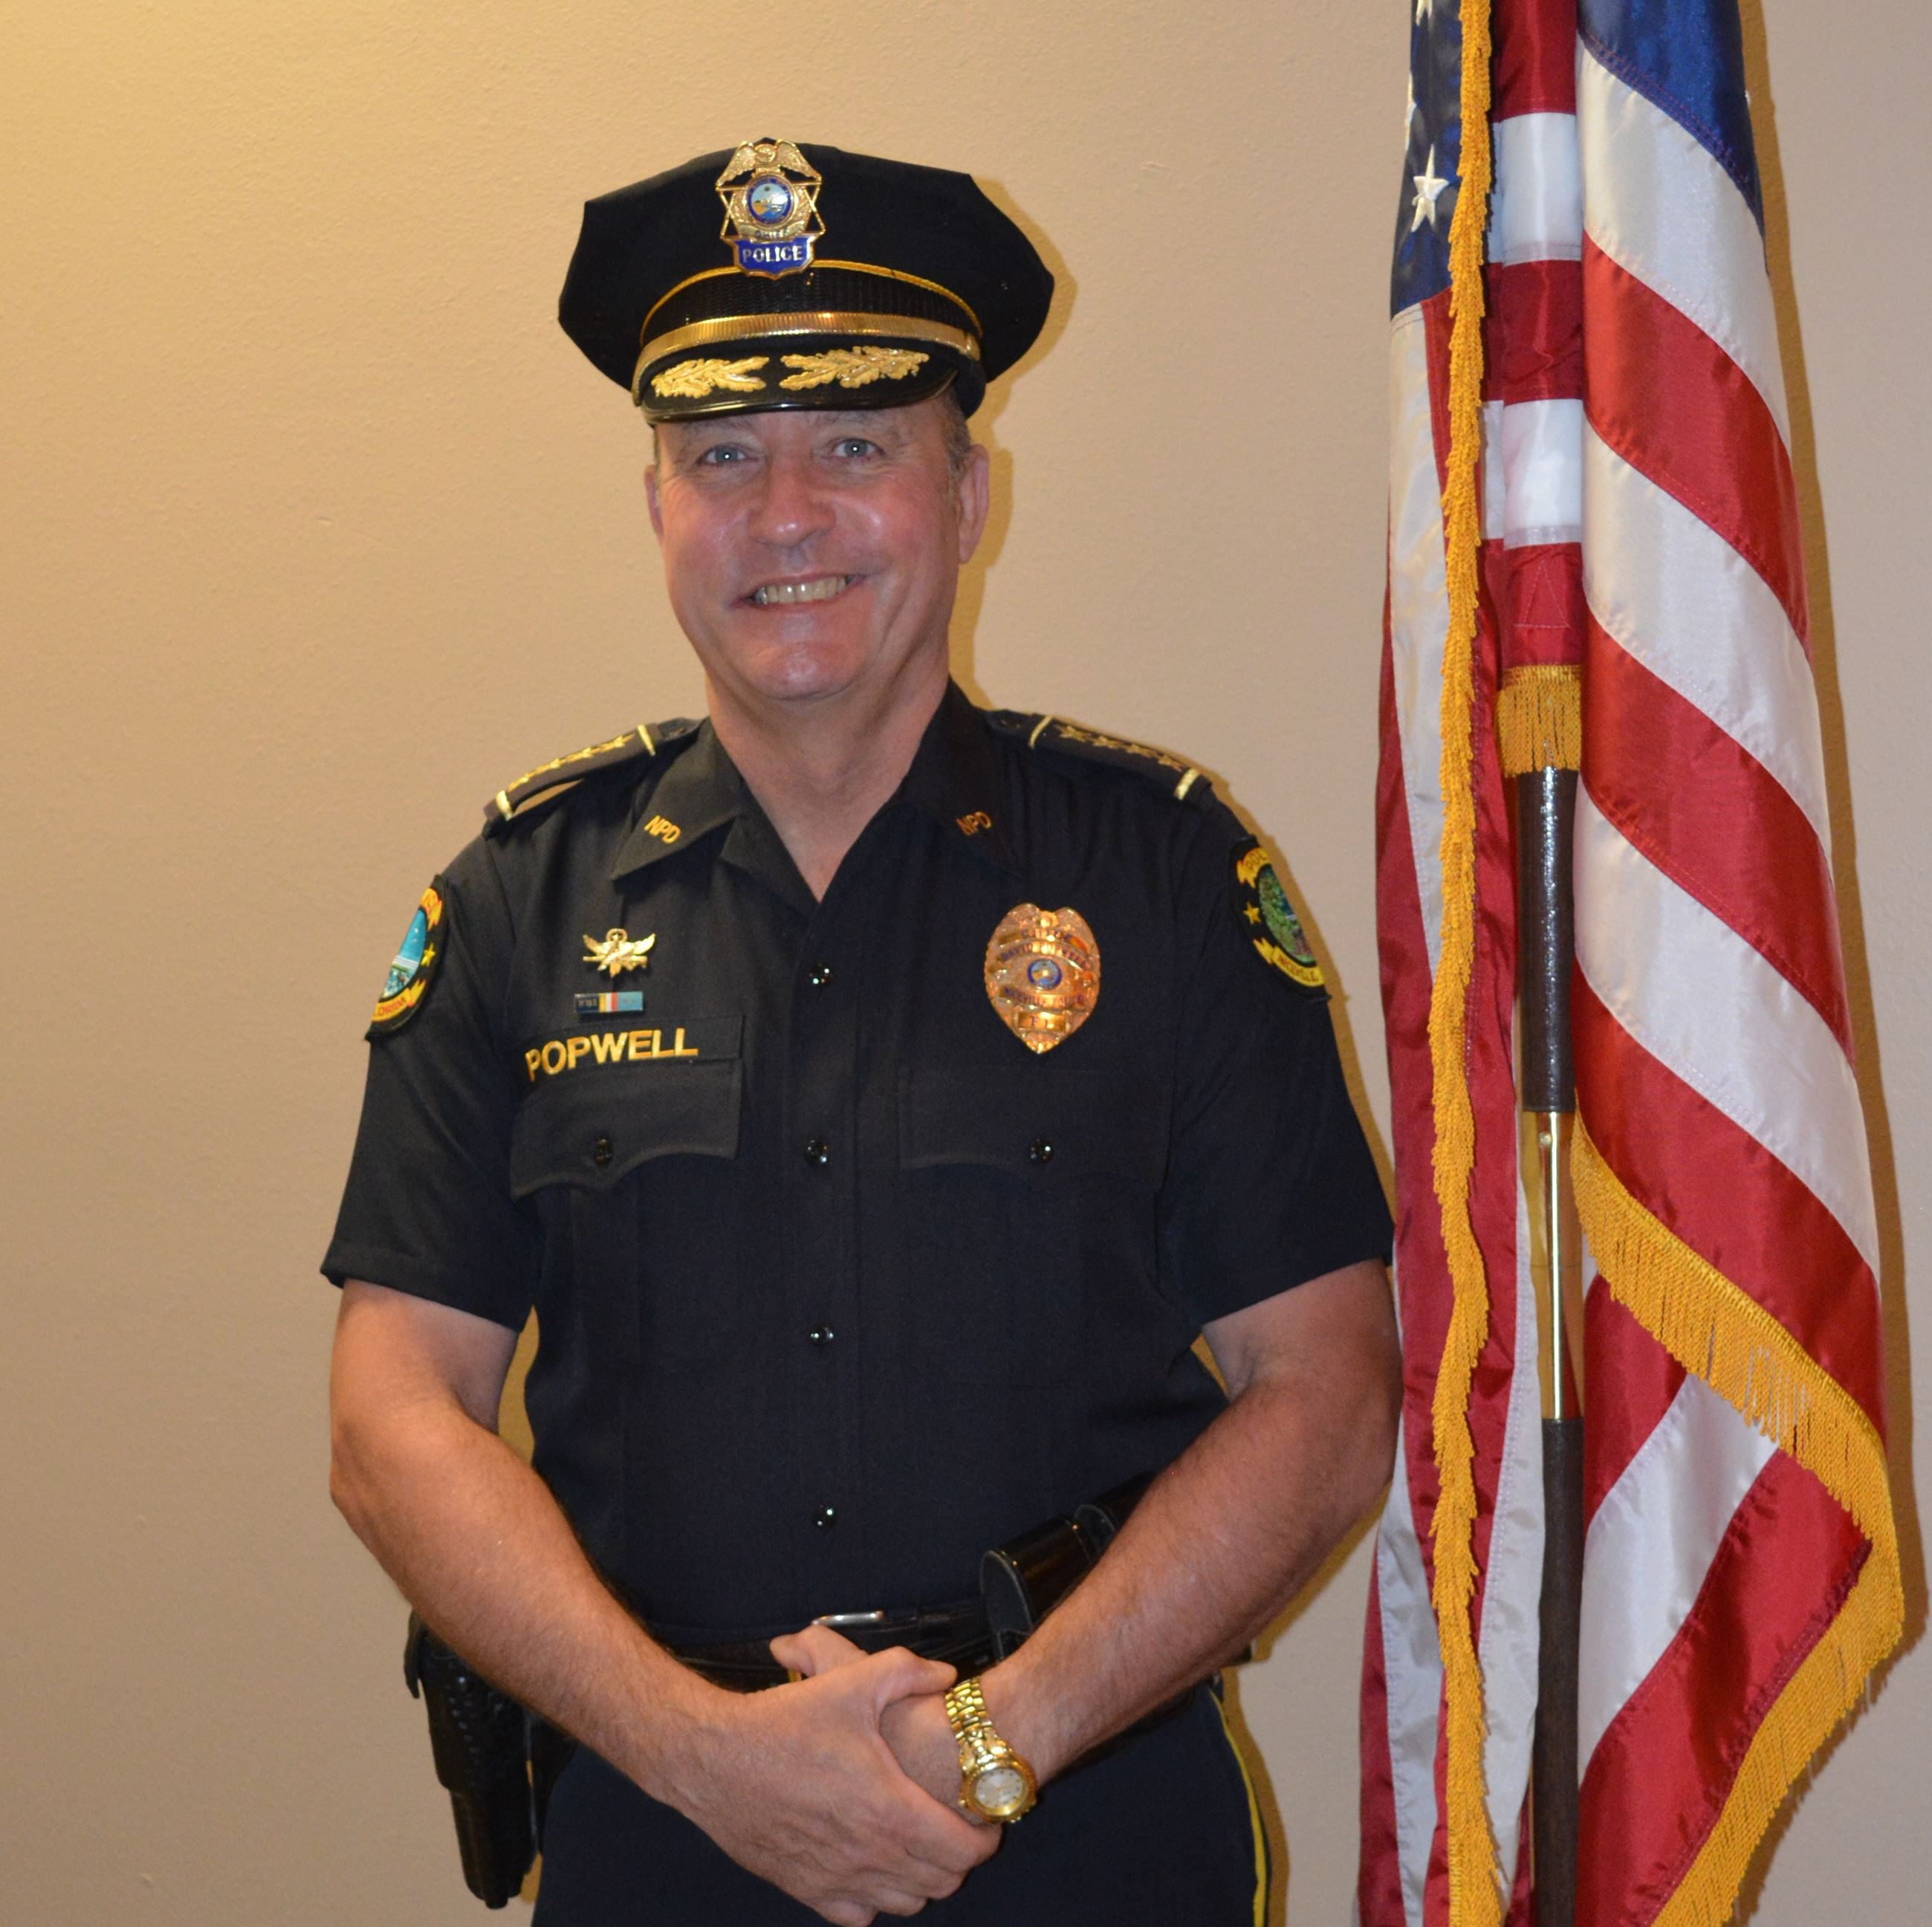 Police Chief David Popwell